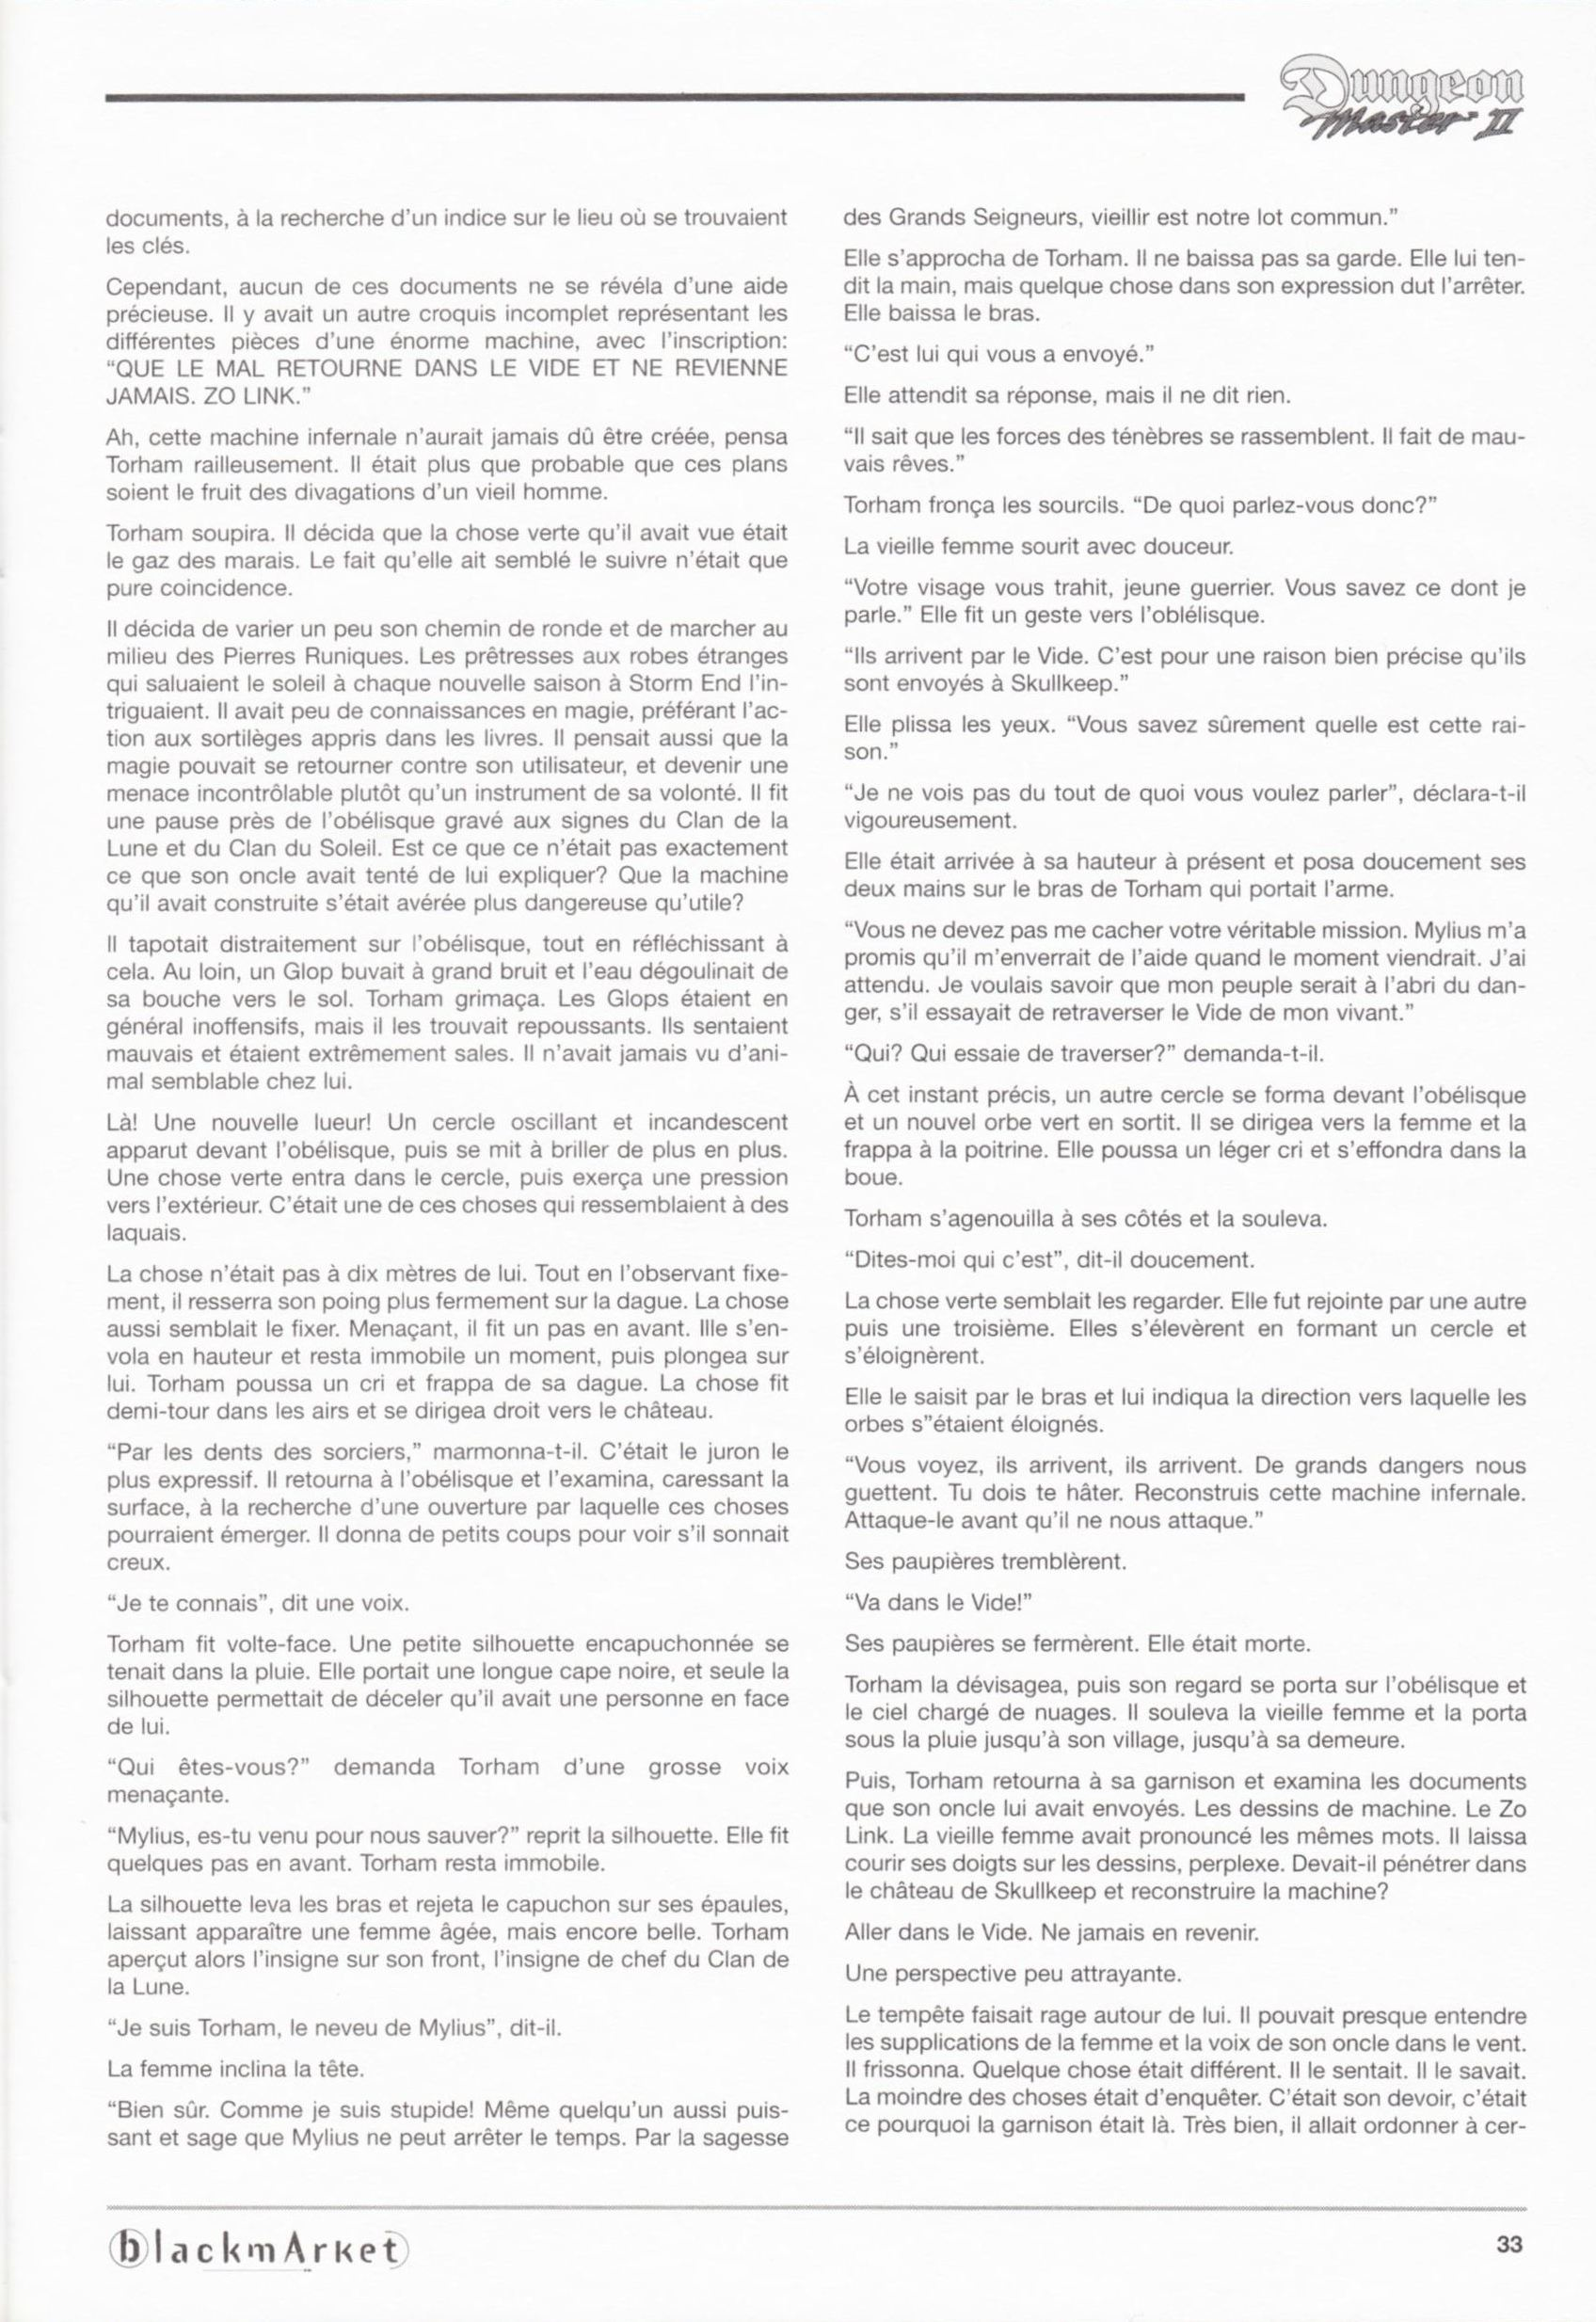 Game - Dungeon Master II - DE - PC - Blackmarket With Manual - Manual - Page 035 - Scan